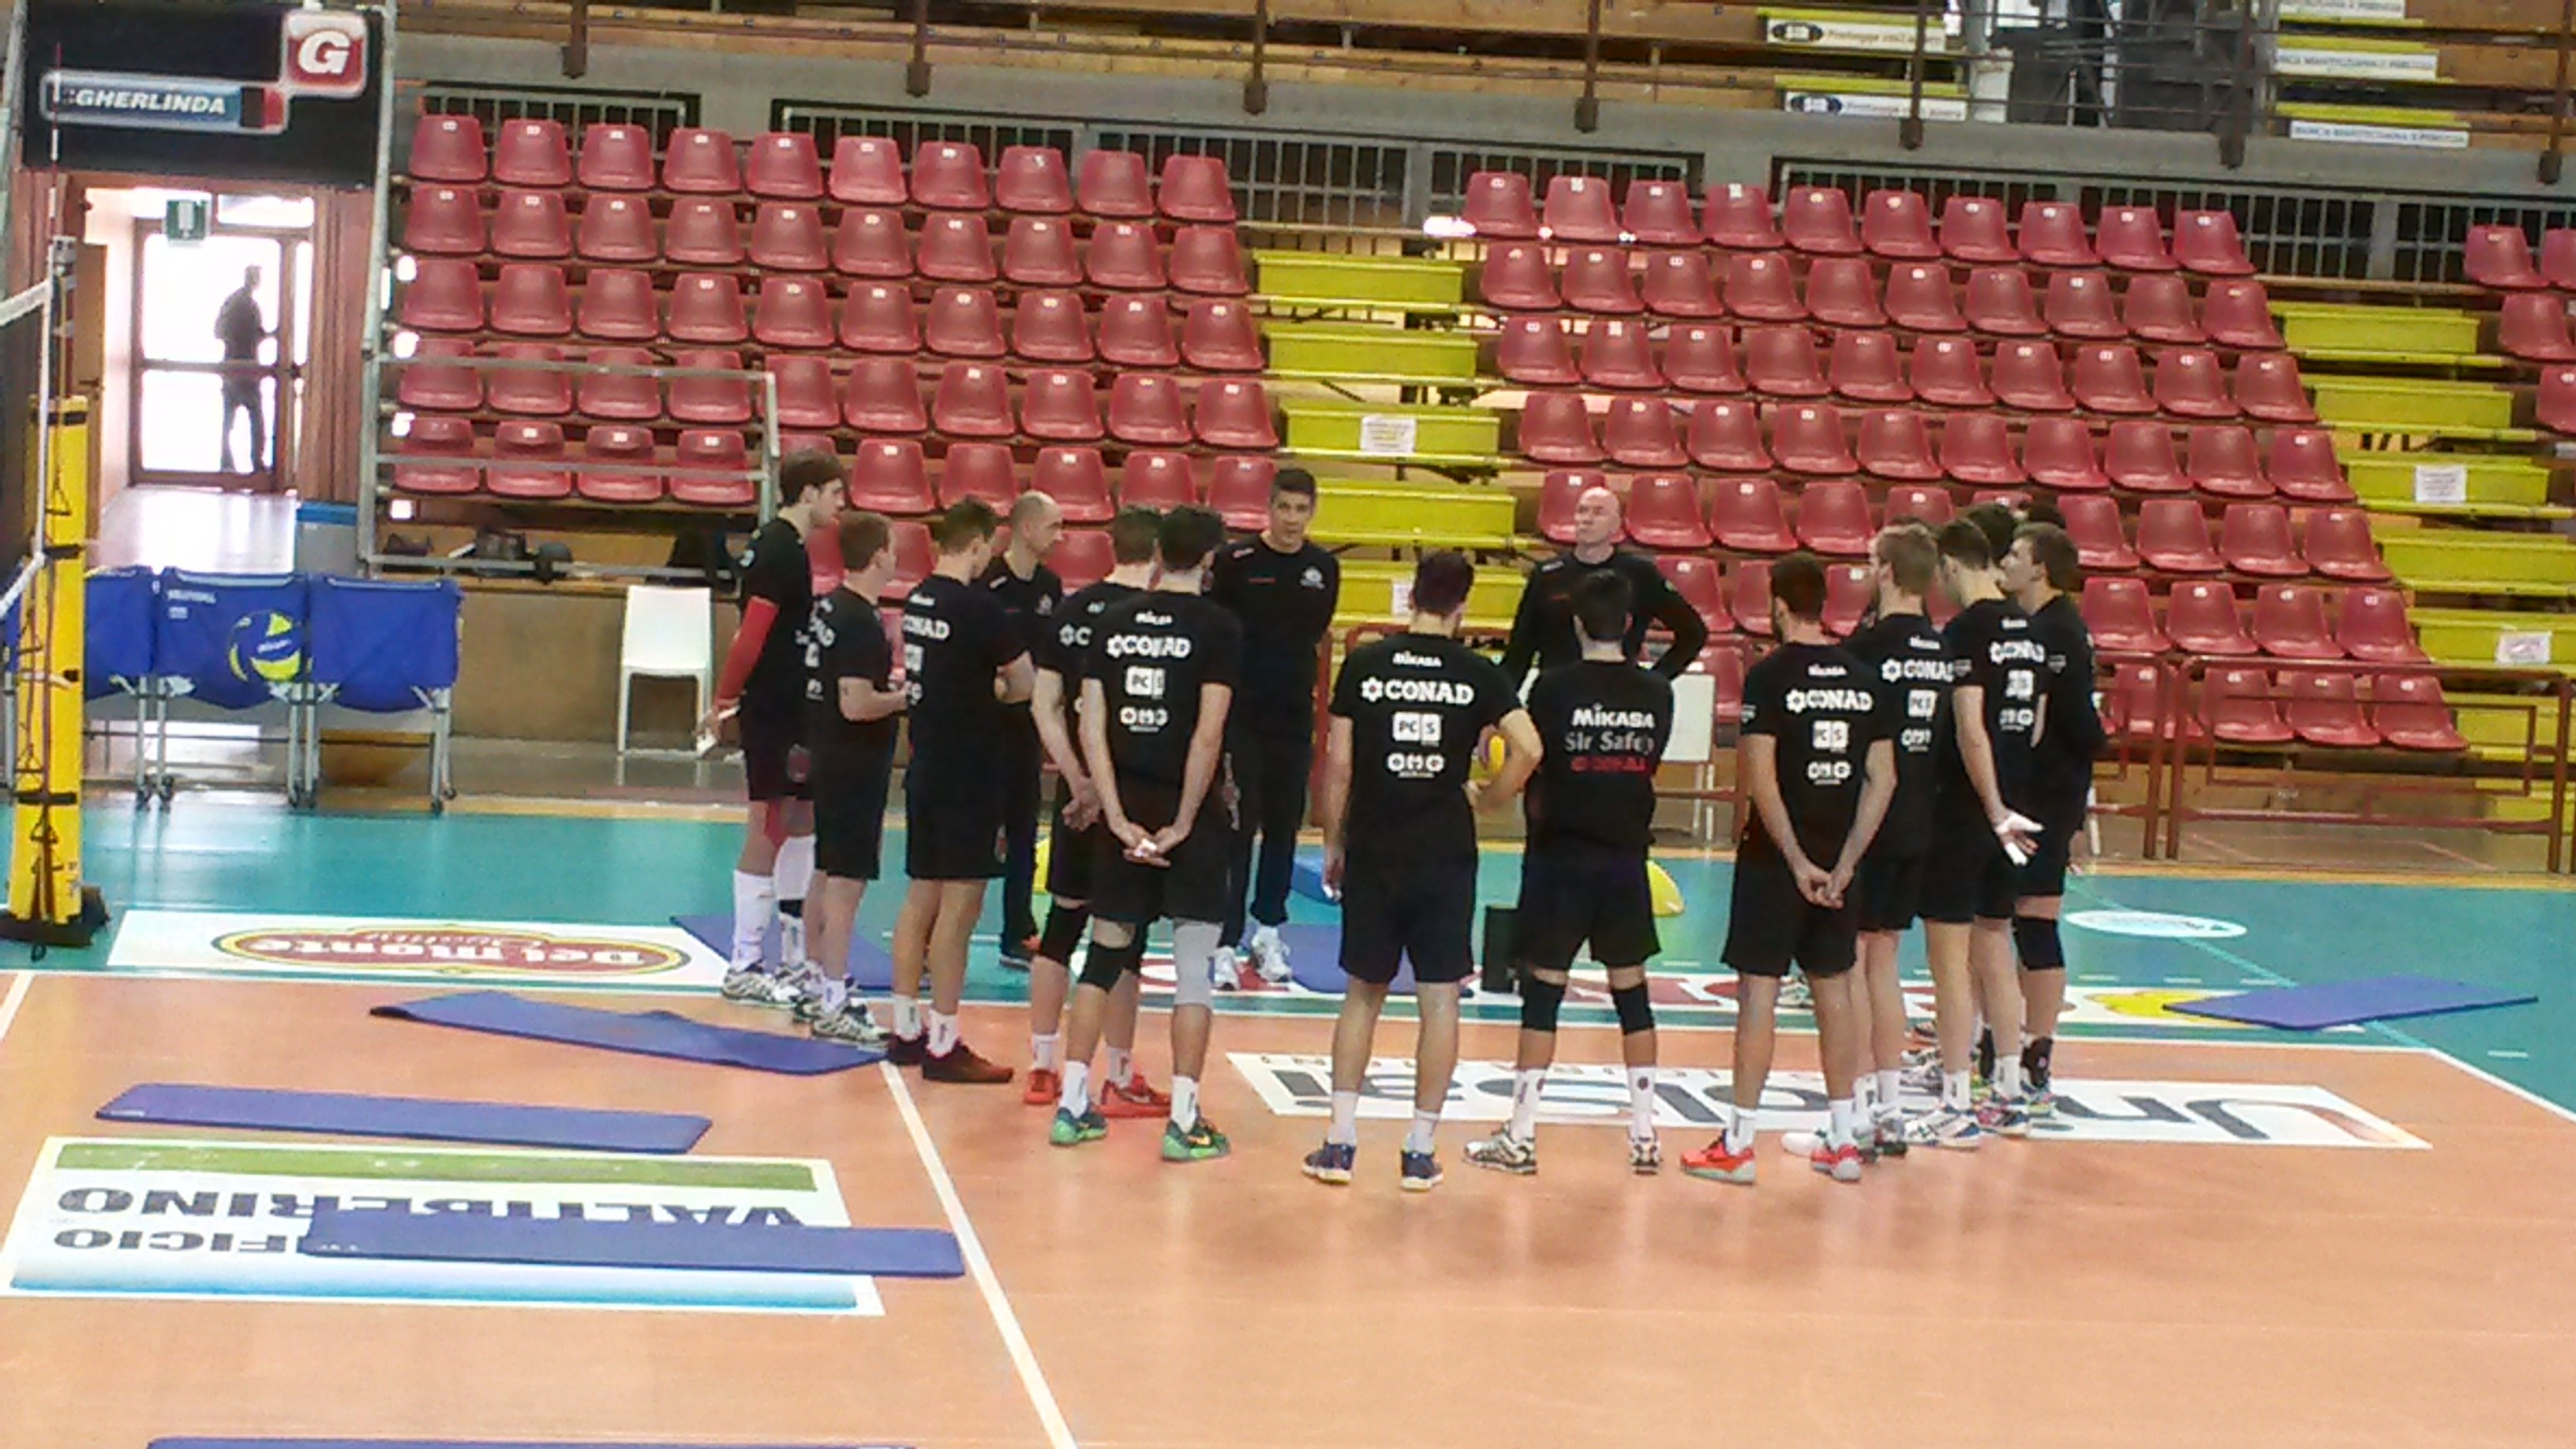 CEV Champions League 2020 Betting Odds